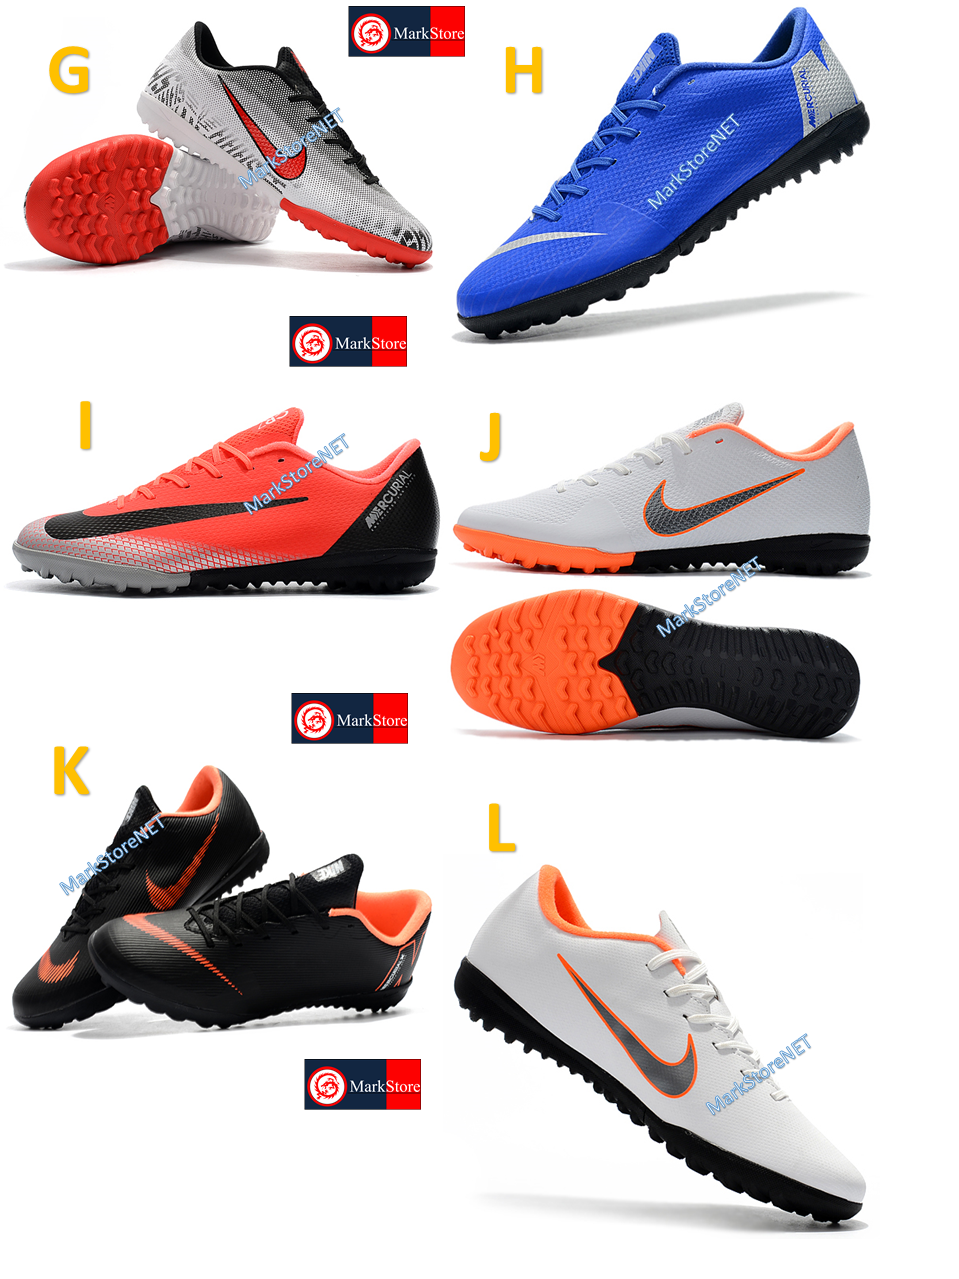 multitacos-nike-mercurial-vapor-12-club-low-tf-modelos-mexico